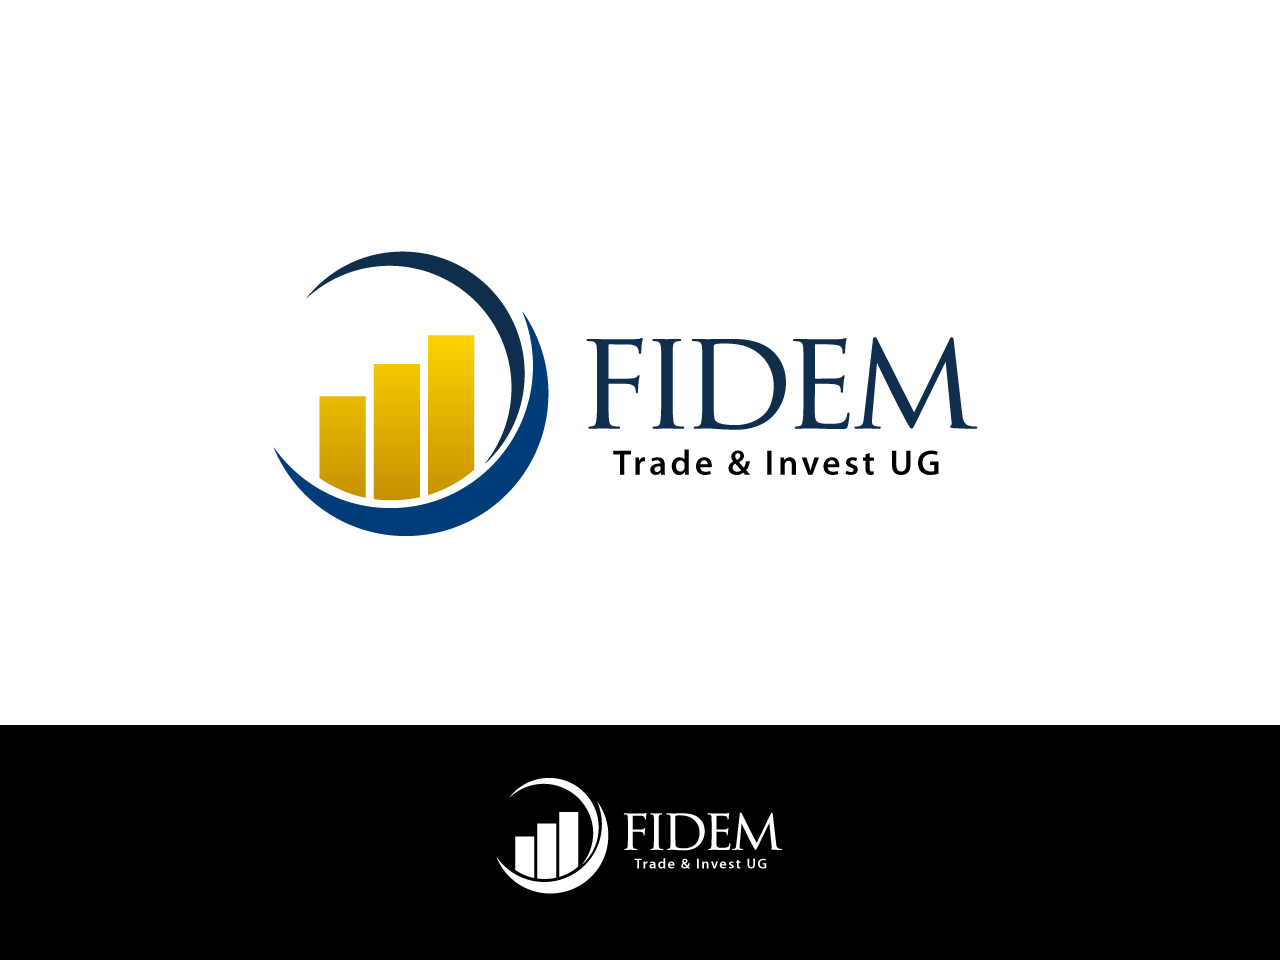 Logo Design by jpbituin - Entry No. 448 in the Logo Design Contest Professional Logo Design for FIDEM Trade & Invest UG.